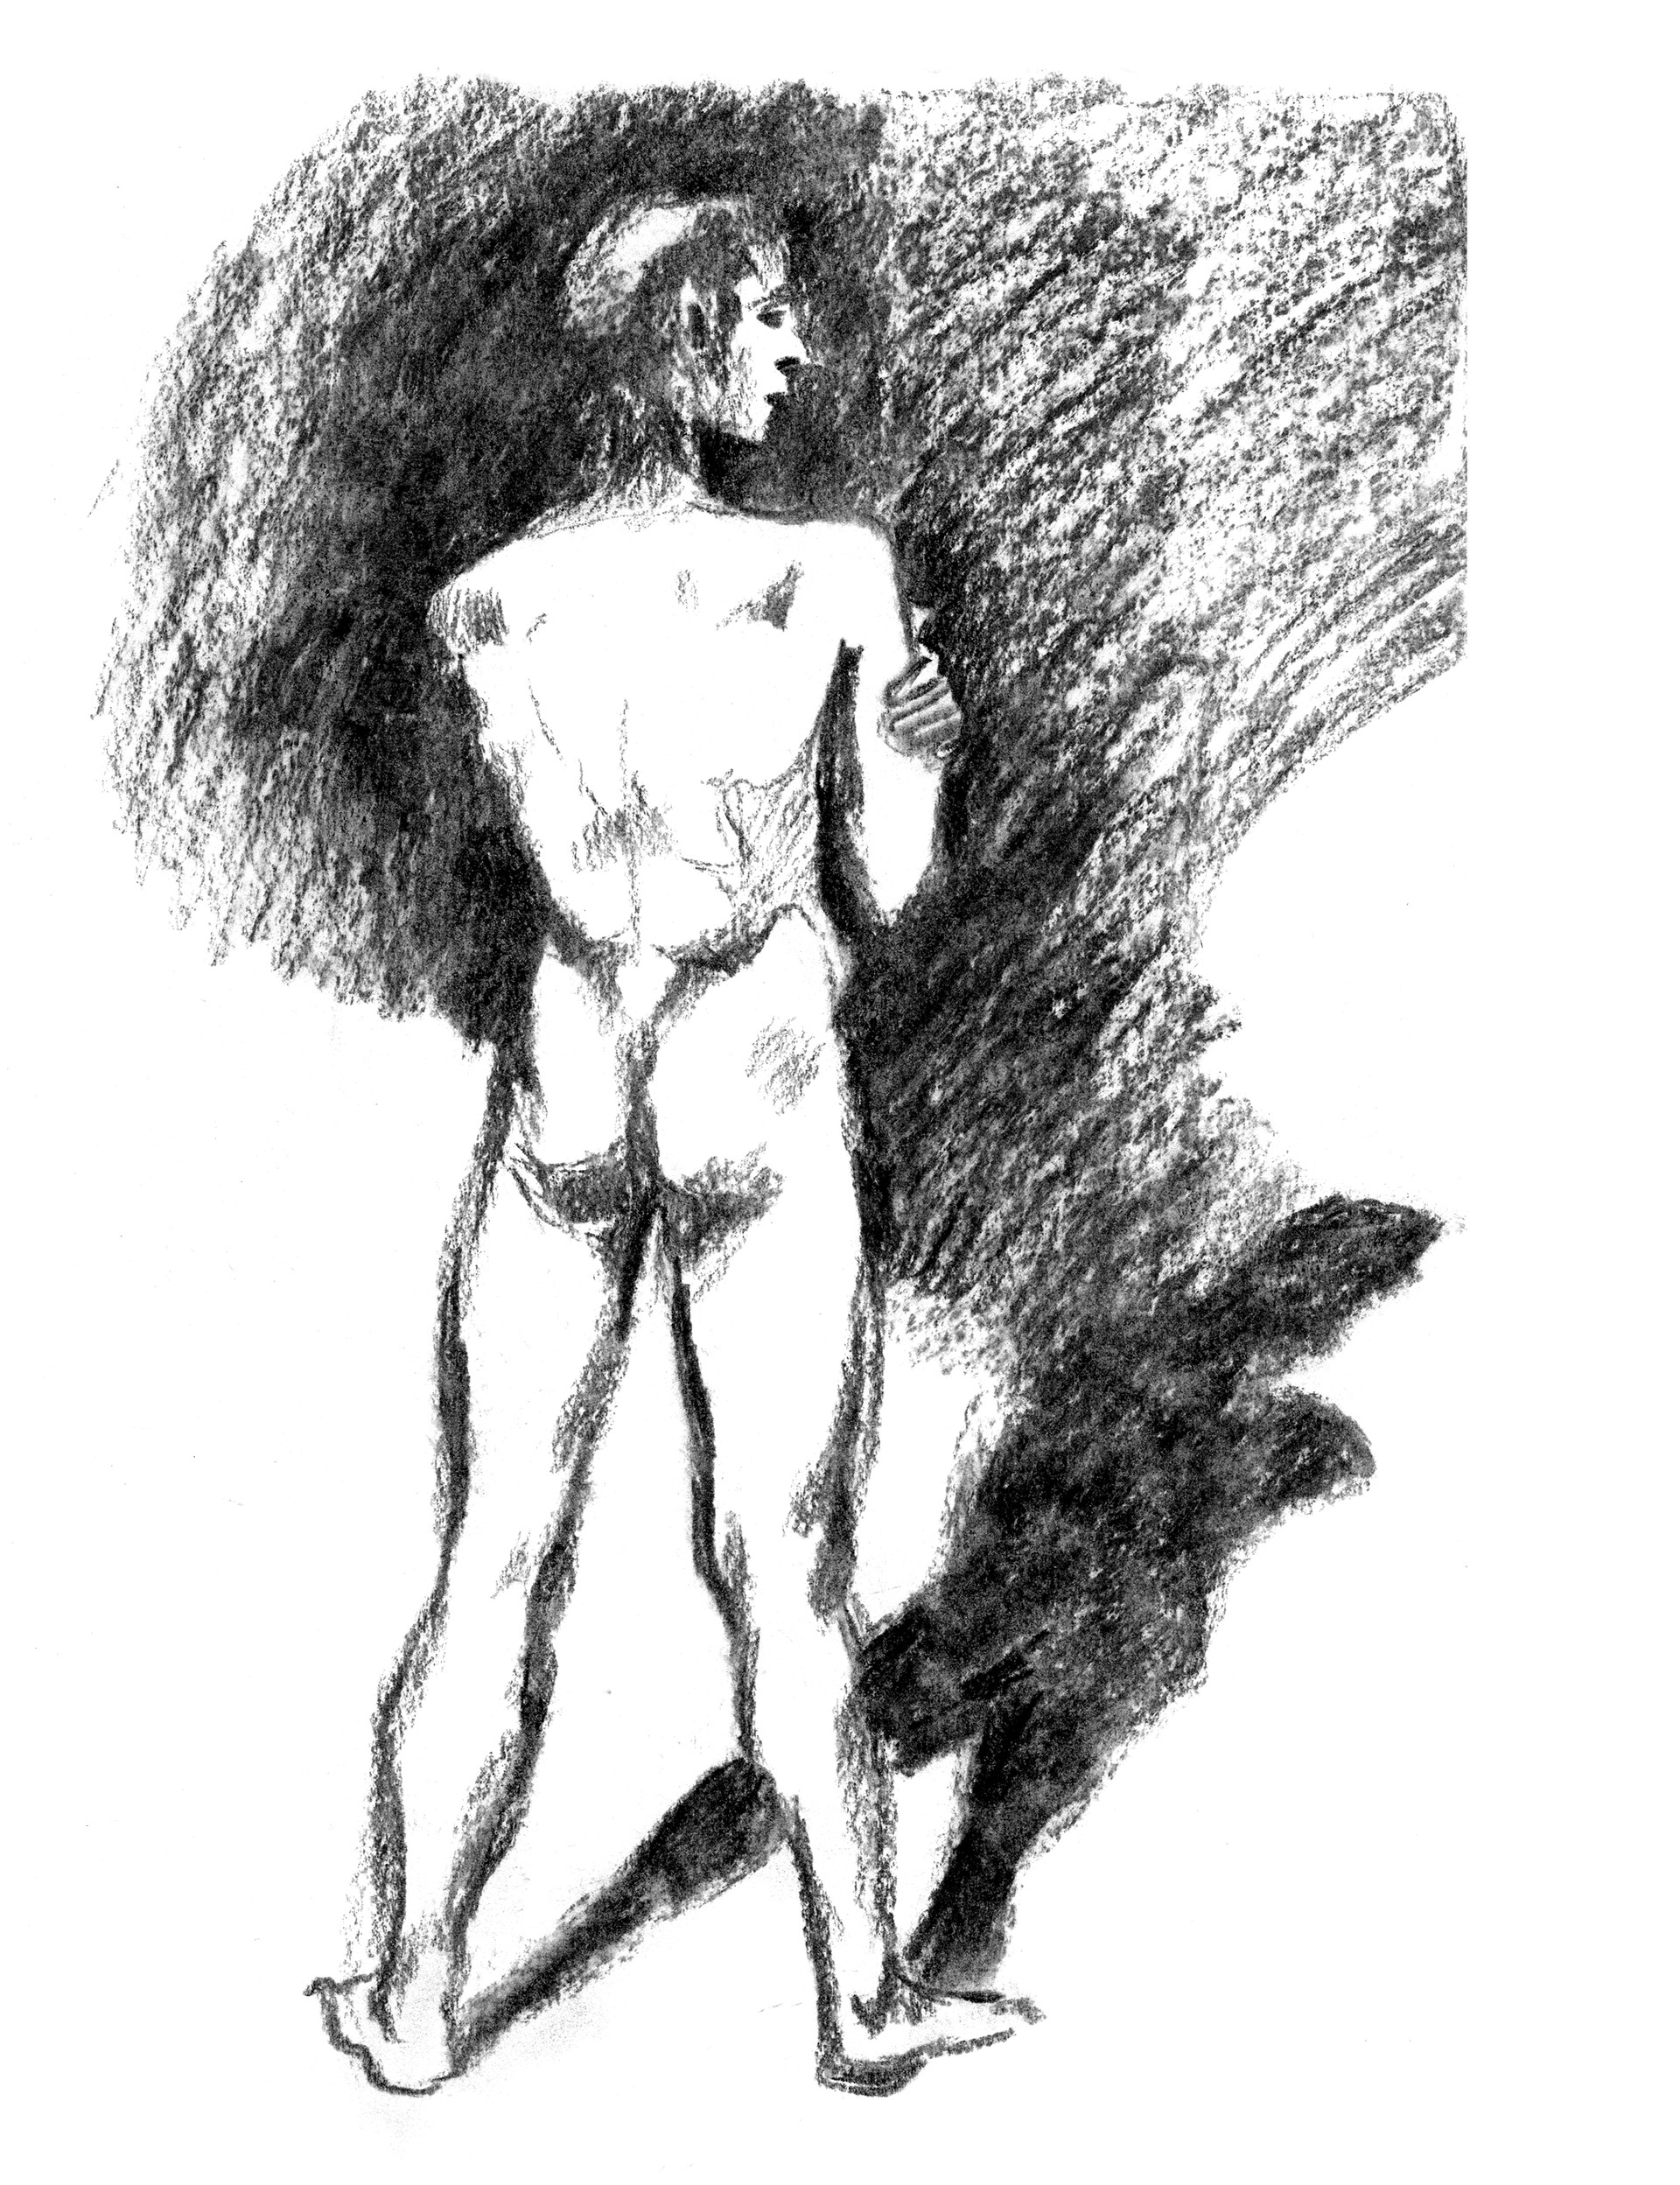 Elisa moriconi 3 06 giugno the boy standing charcoal 02